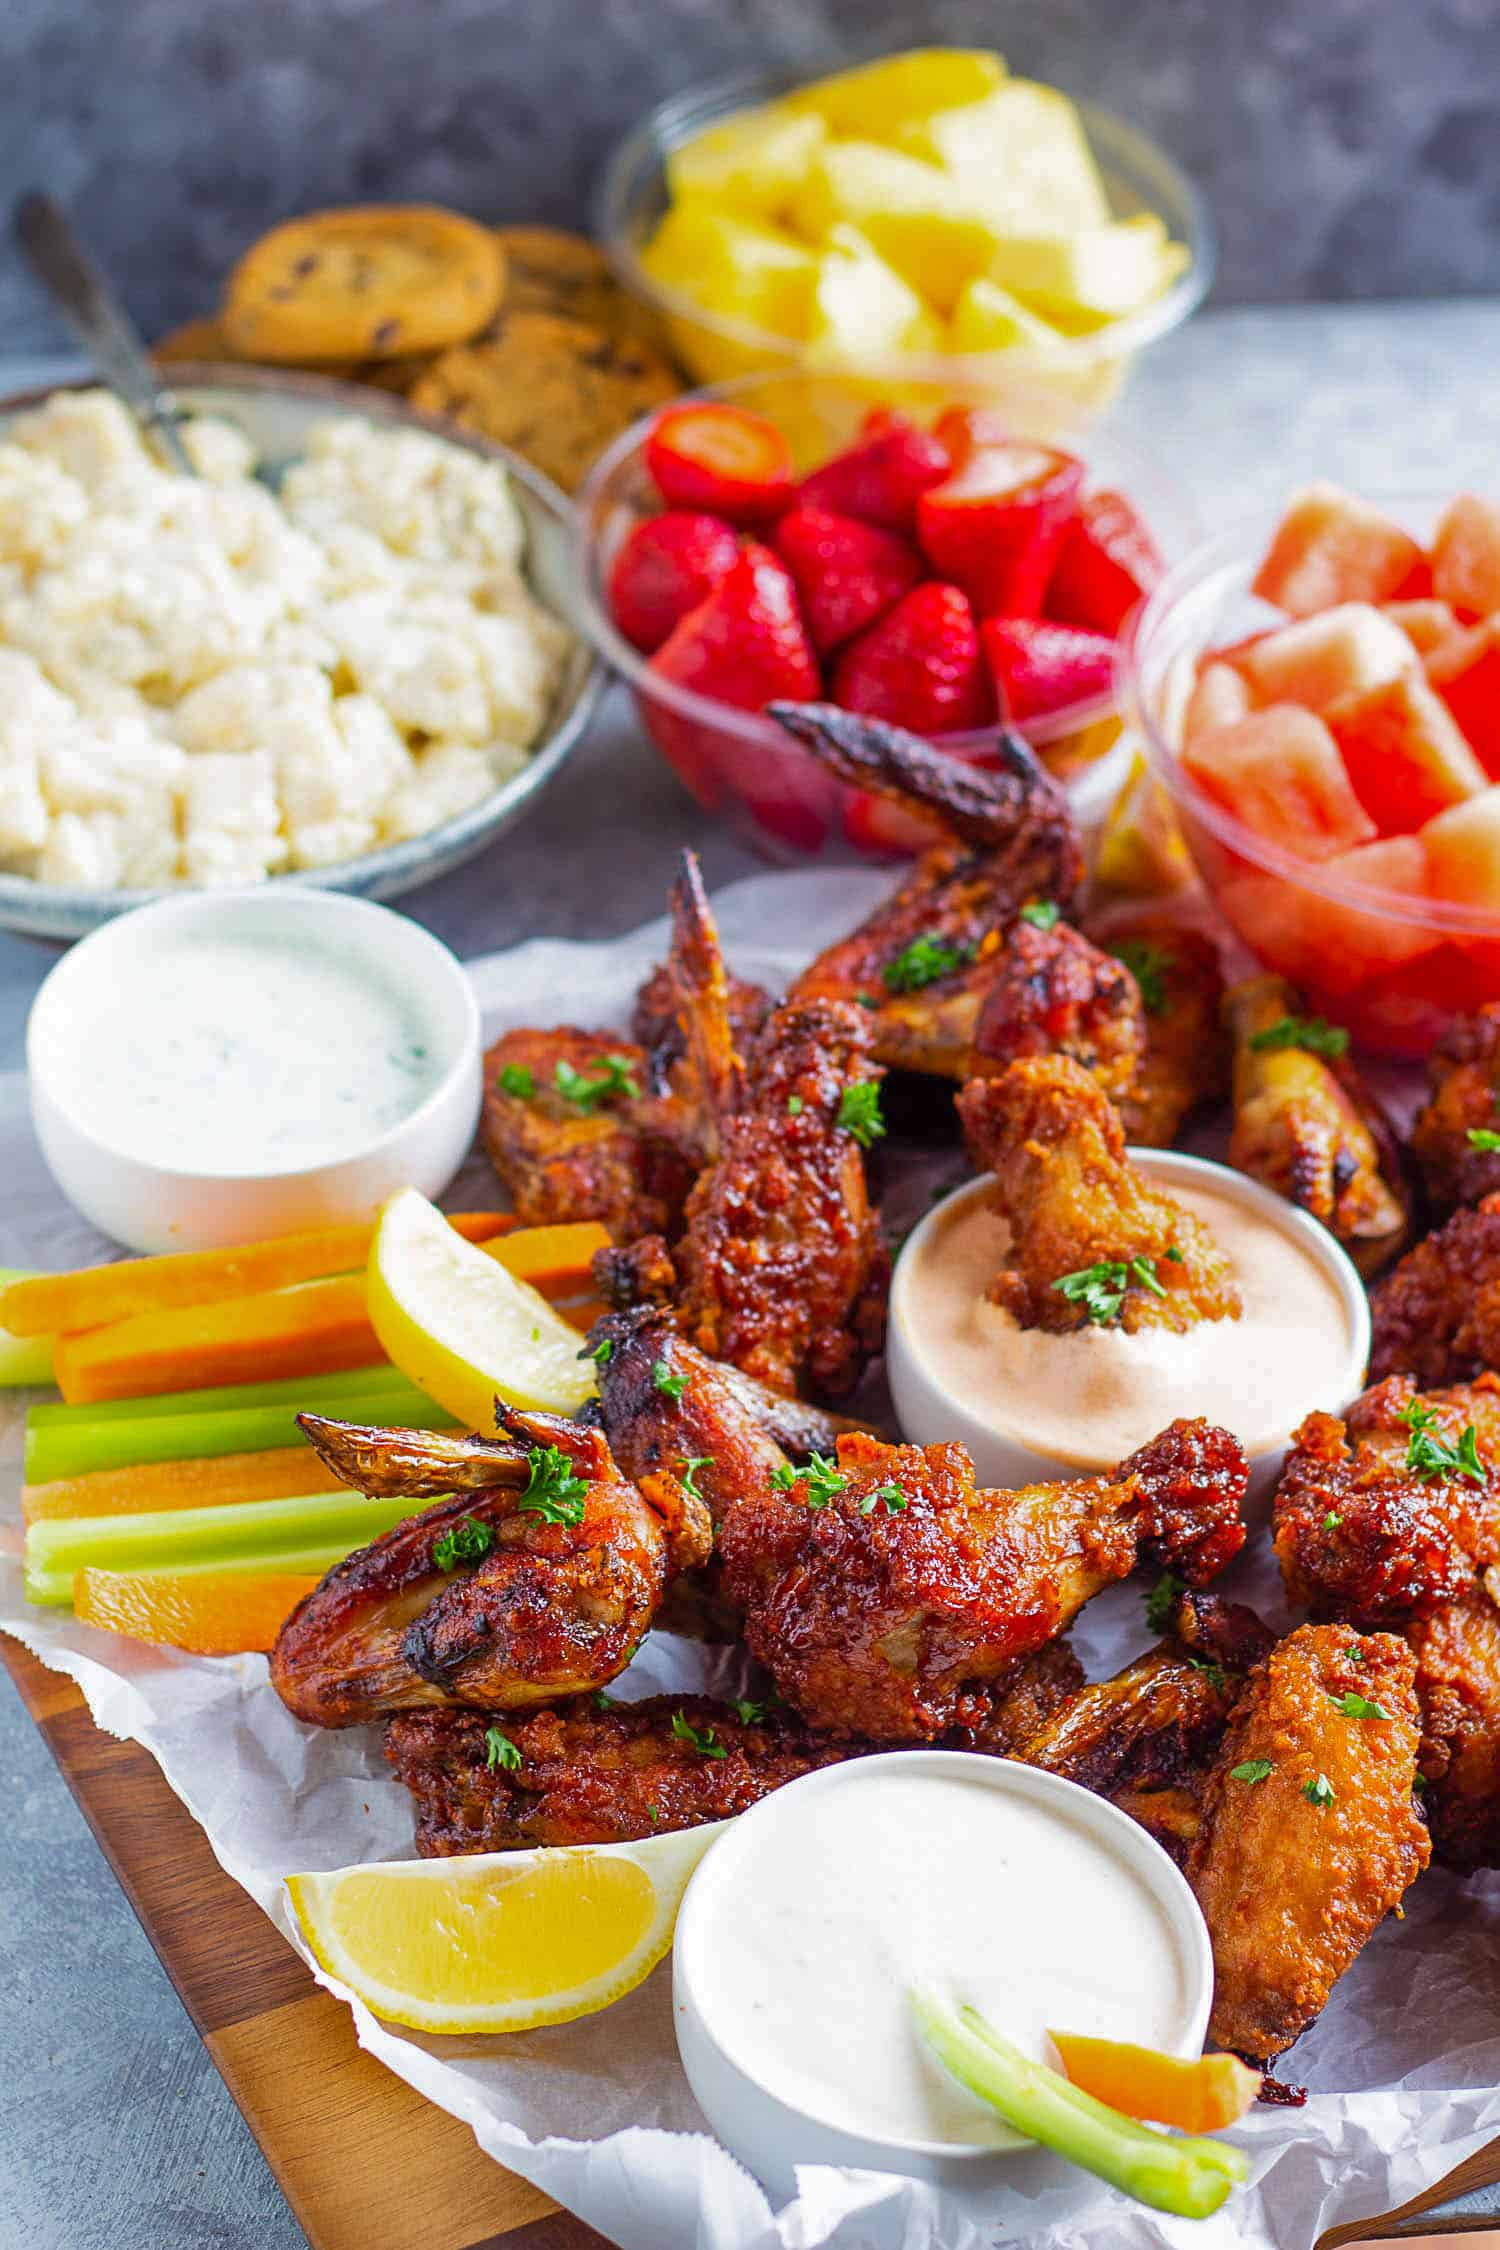 Dip the wings in the smoked paprika aioli dipping sauce.